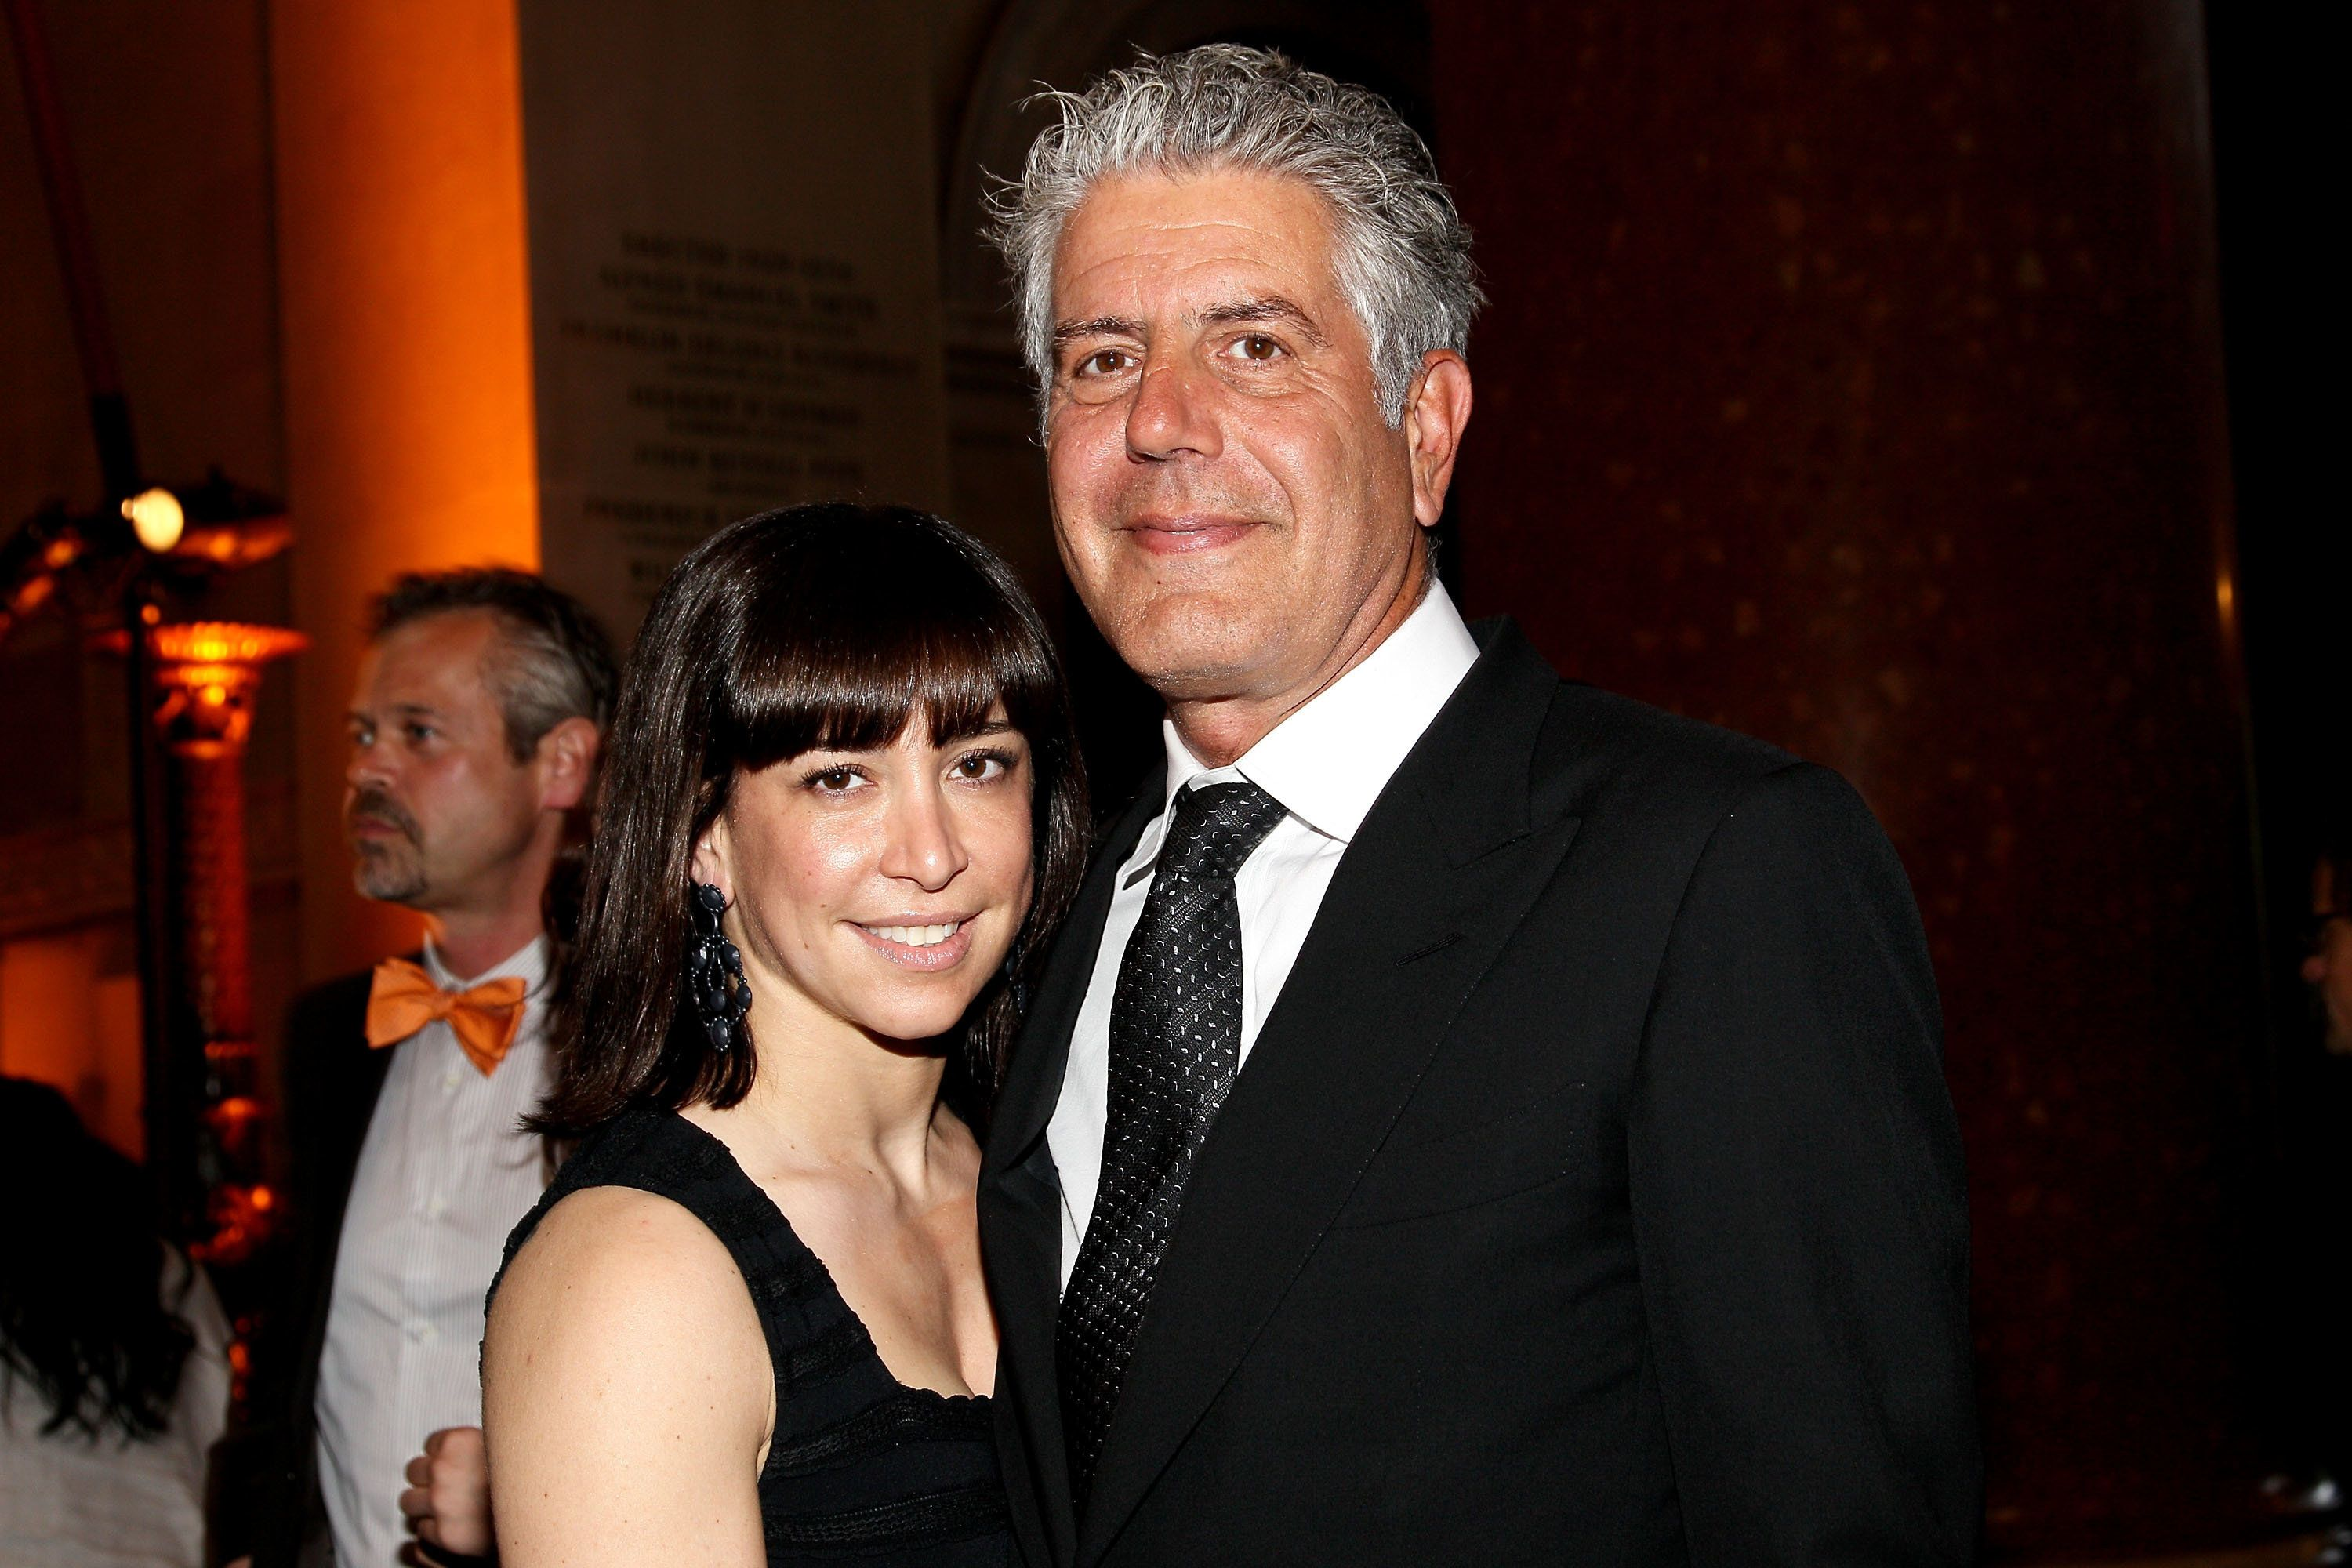 Anthony Bourdain and his wifeOttavia Busia are doing their own version of conscious uncoupling.